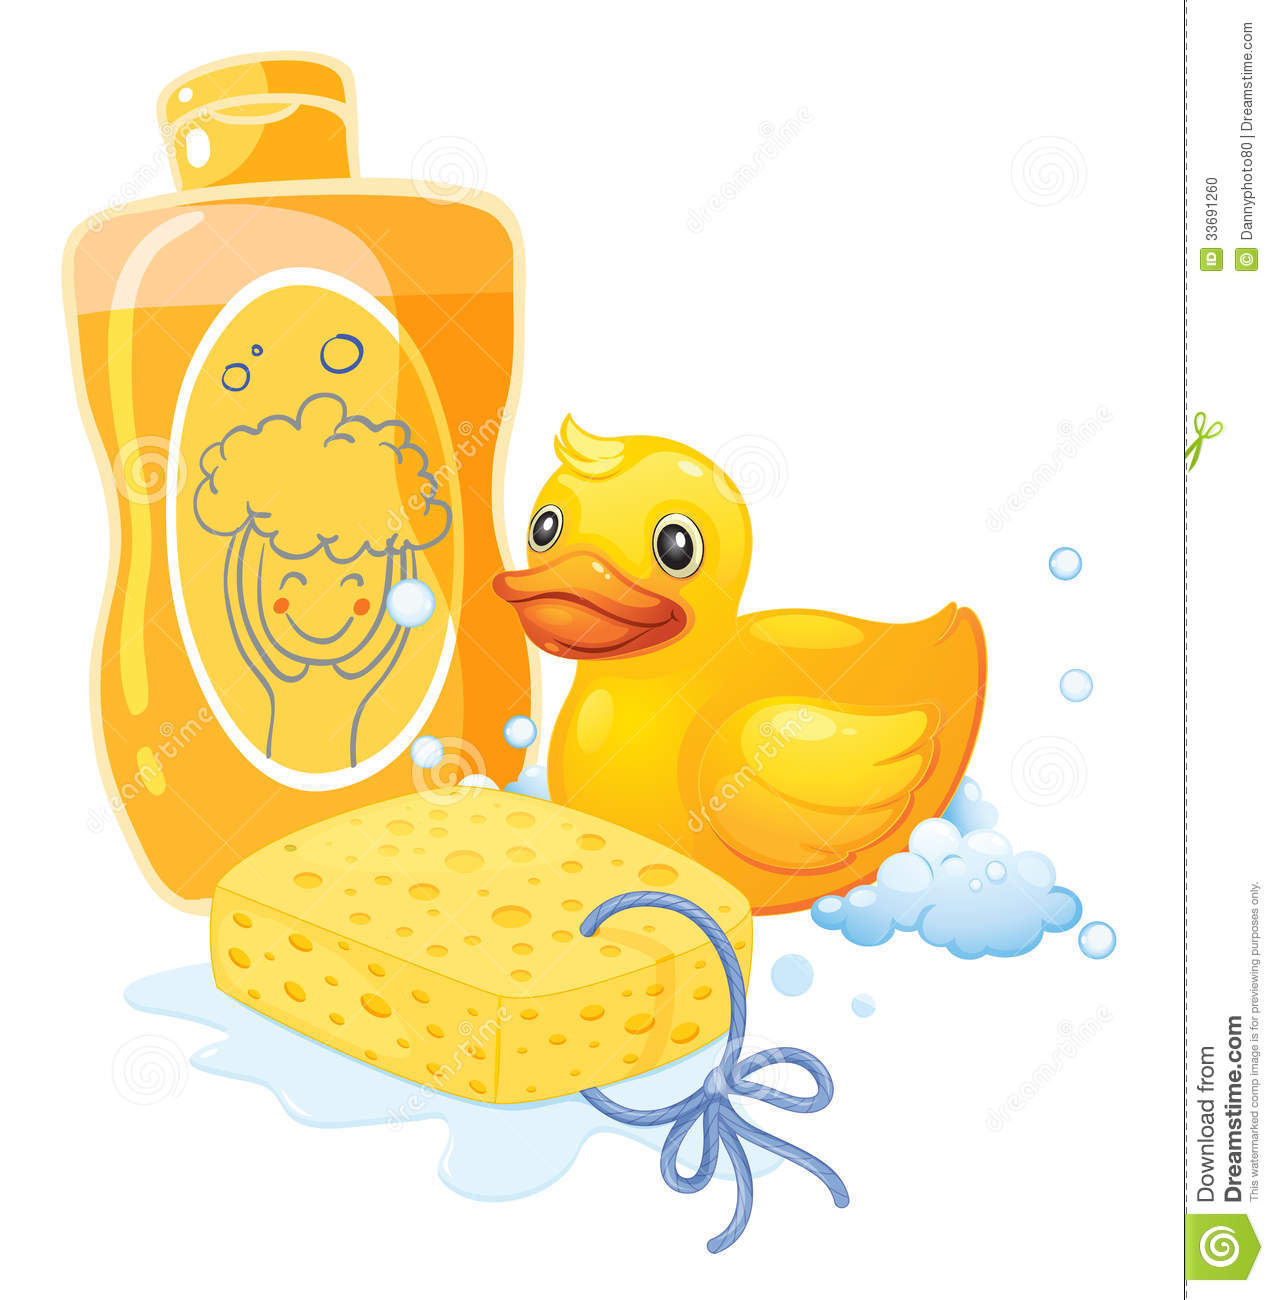 A Bubble Bath With A Sponge And A Toy Duck Stock Photo